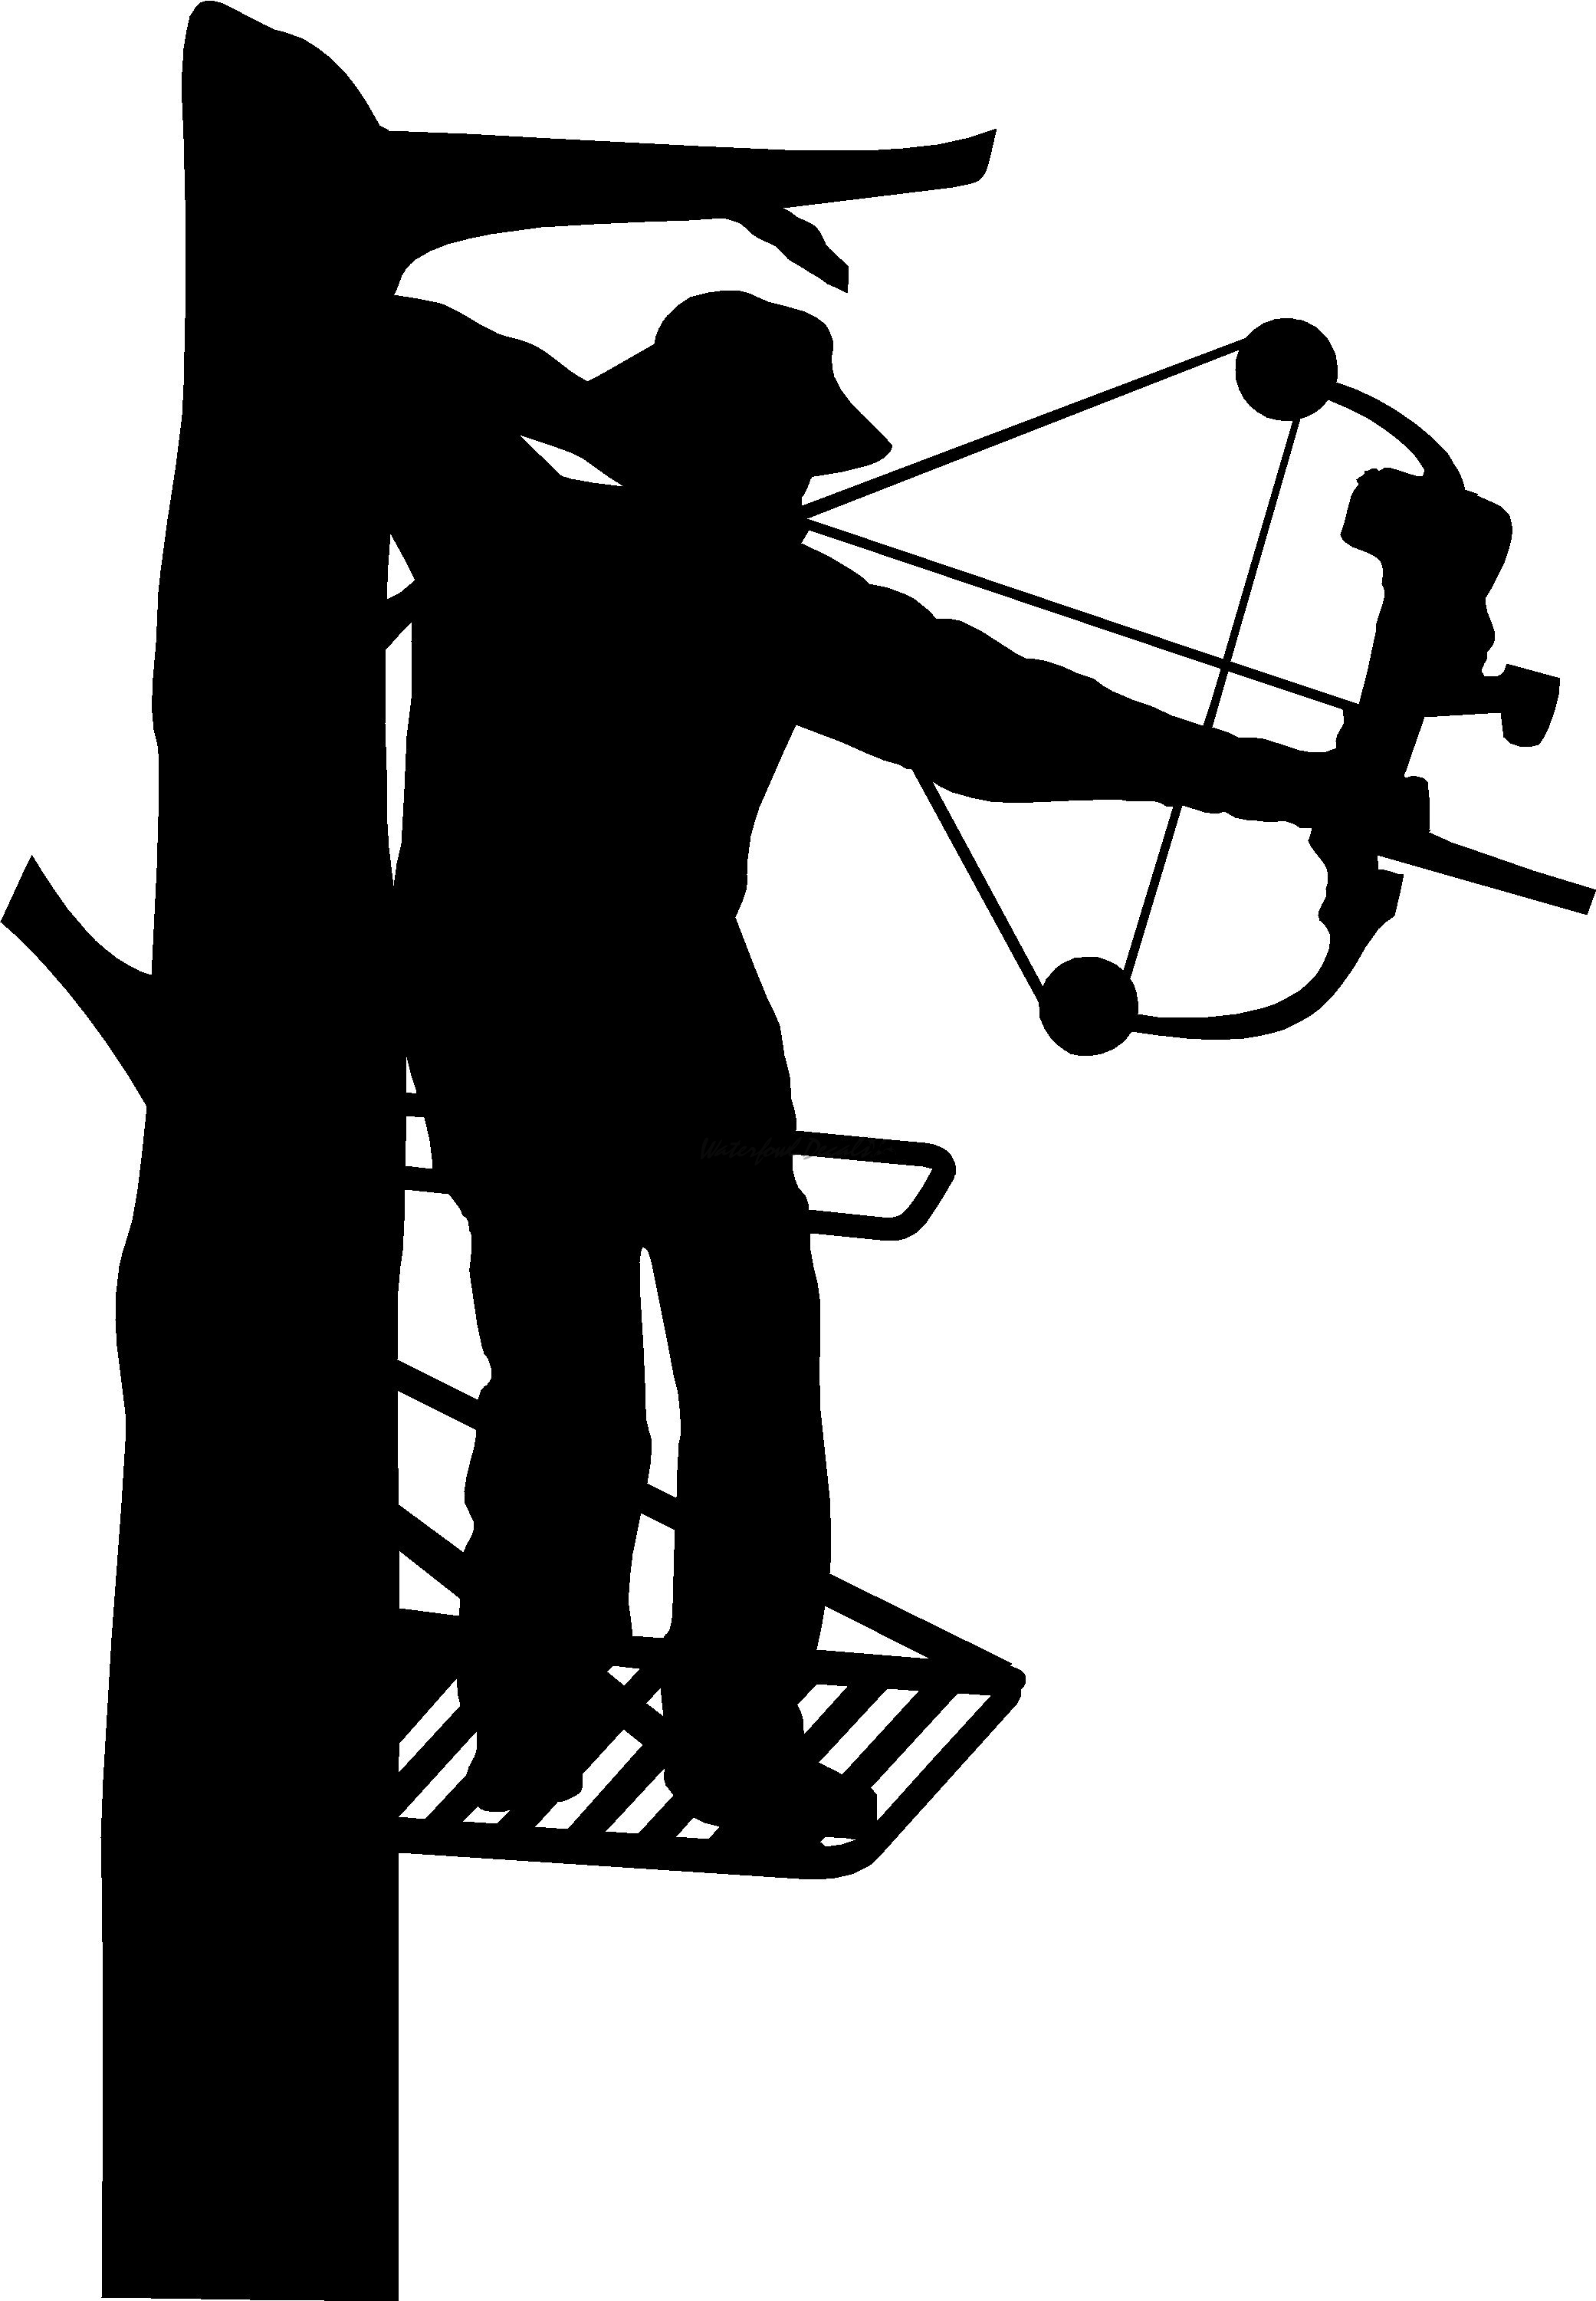 Bow station . Hunting clipart archery hunting